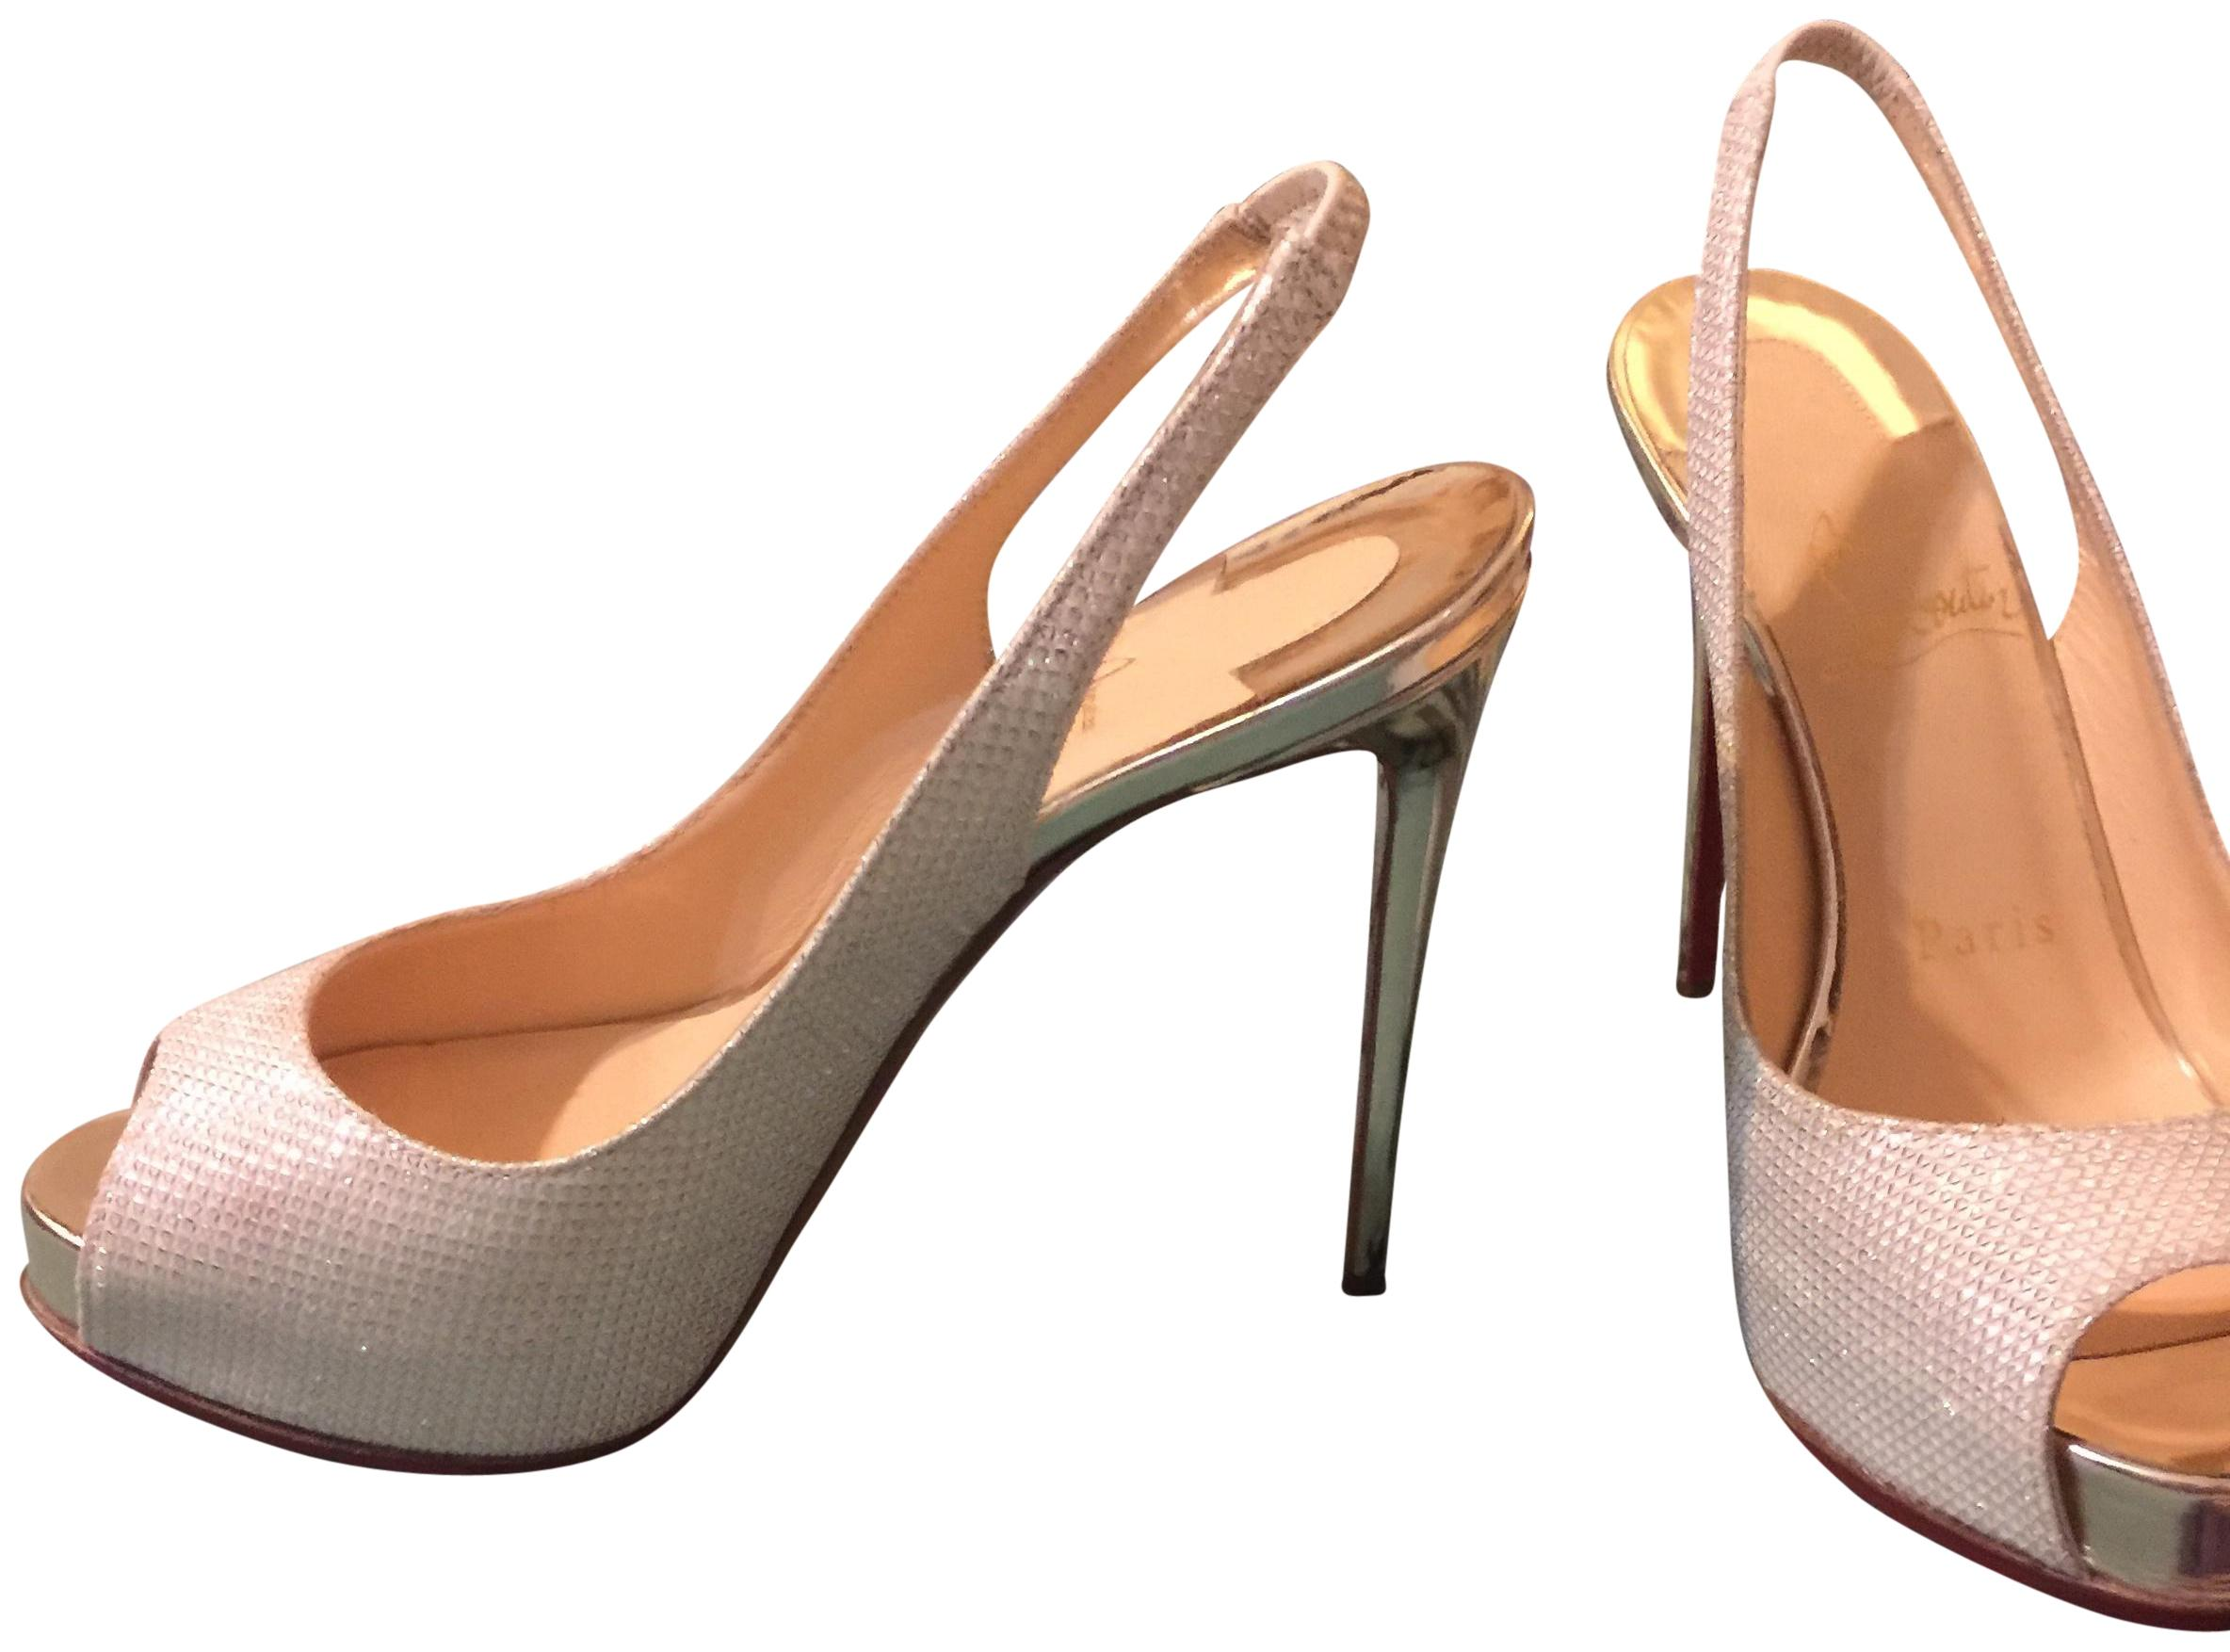 Christian Louboutin Silver New Prive Formal Shoes Size EU 34 (Approx. US 4) Regular (M, B)